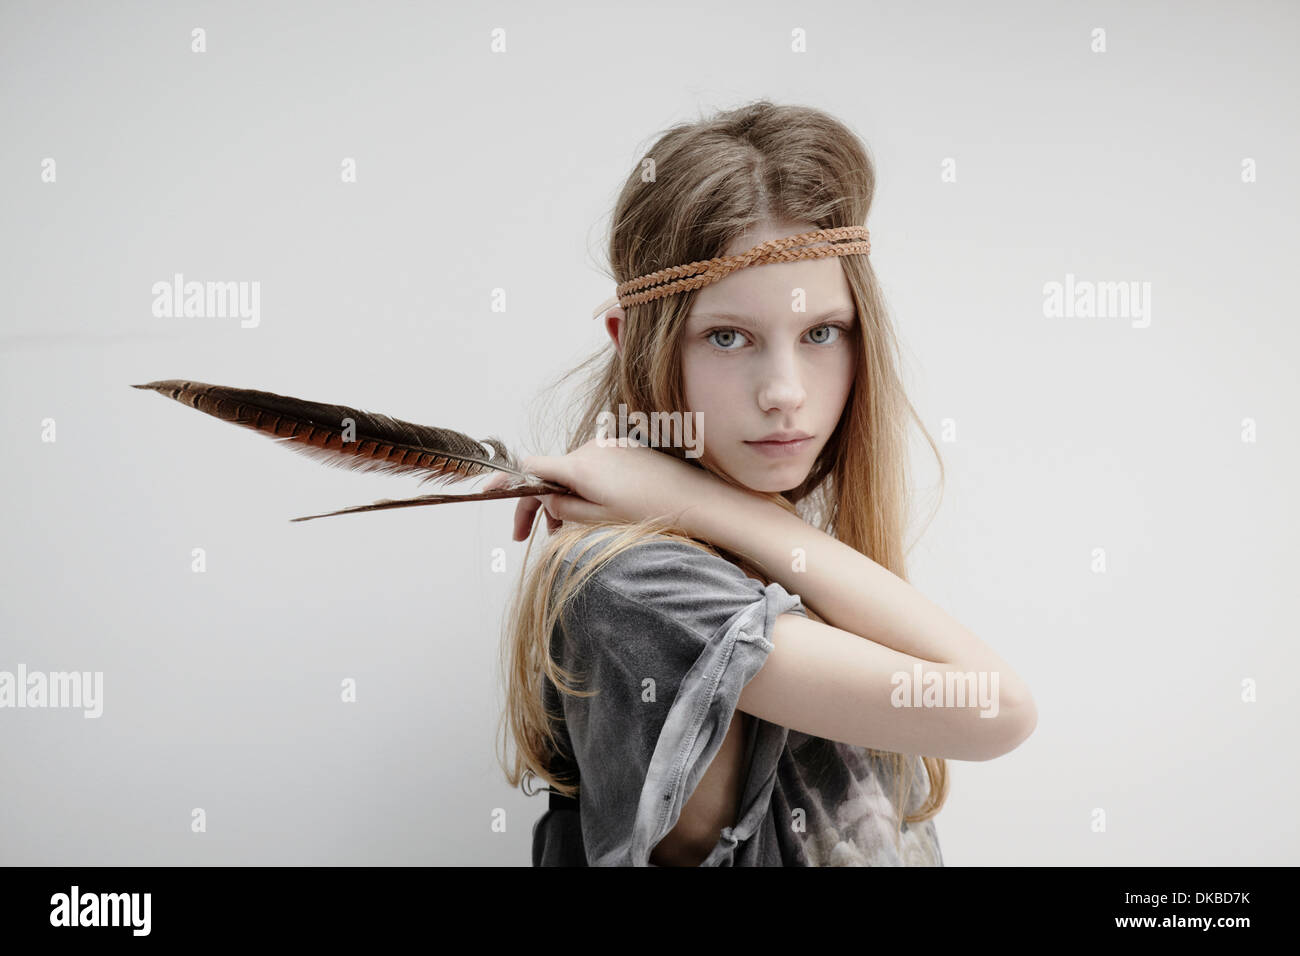 Portrait of girl wearing leather braid around head, holding feather - Stock Image